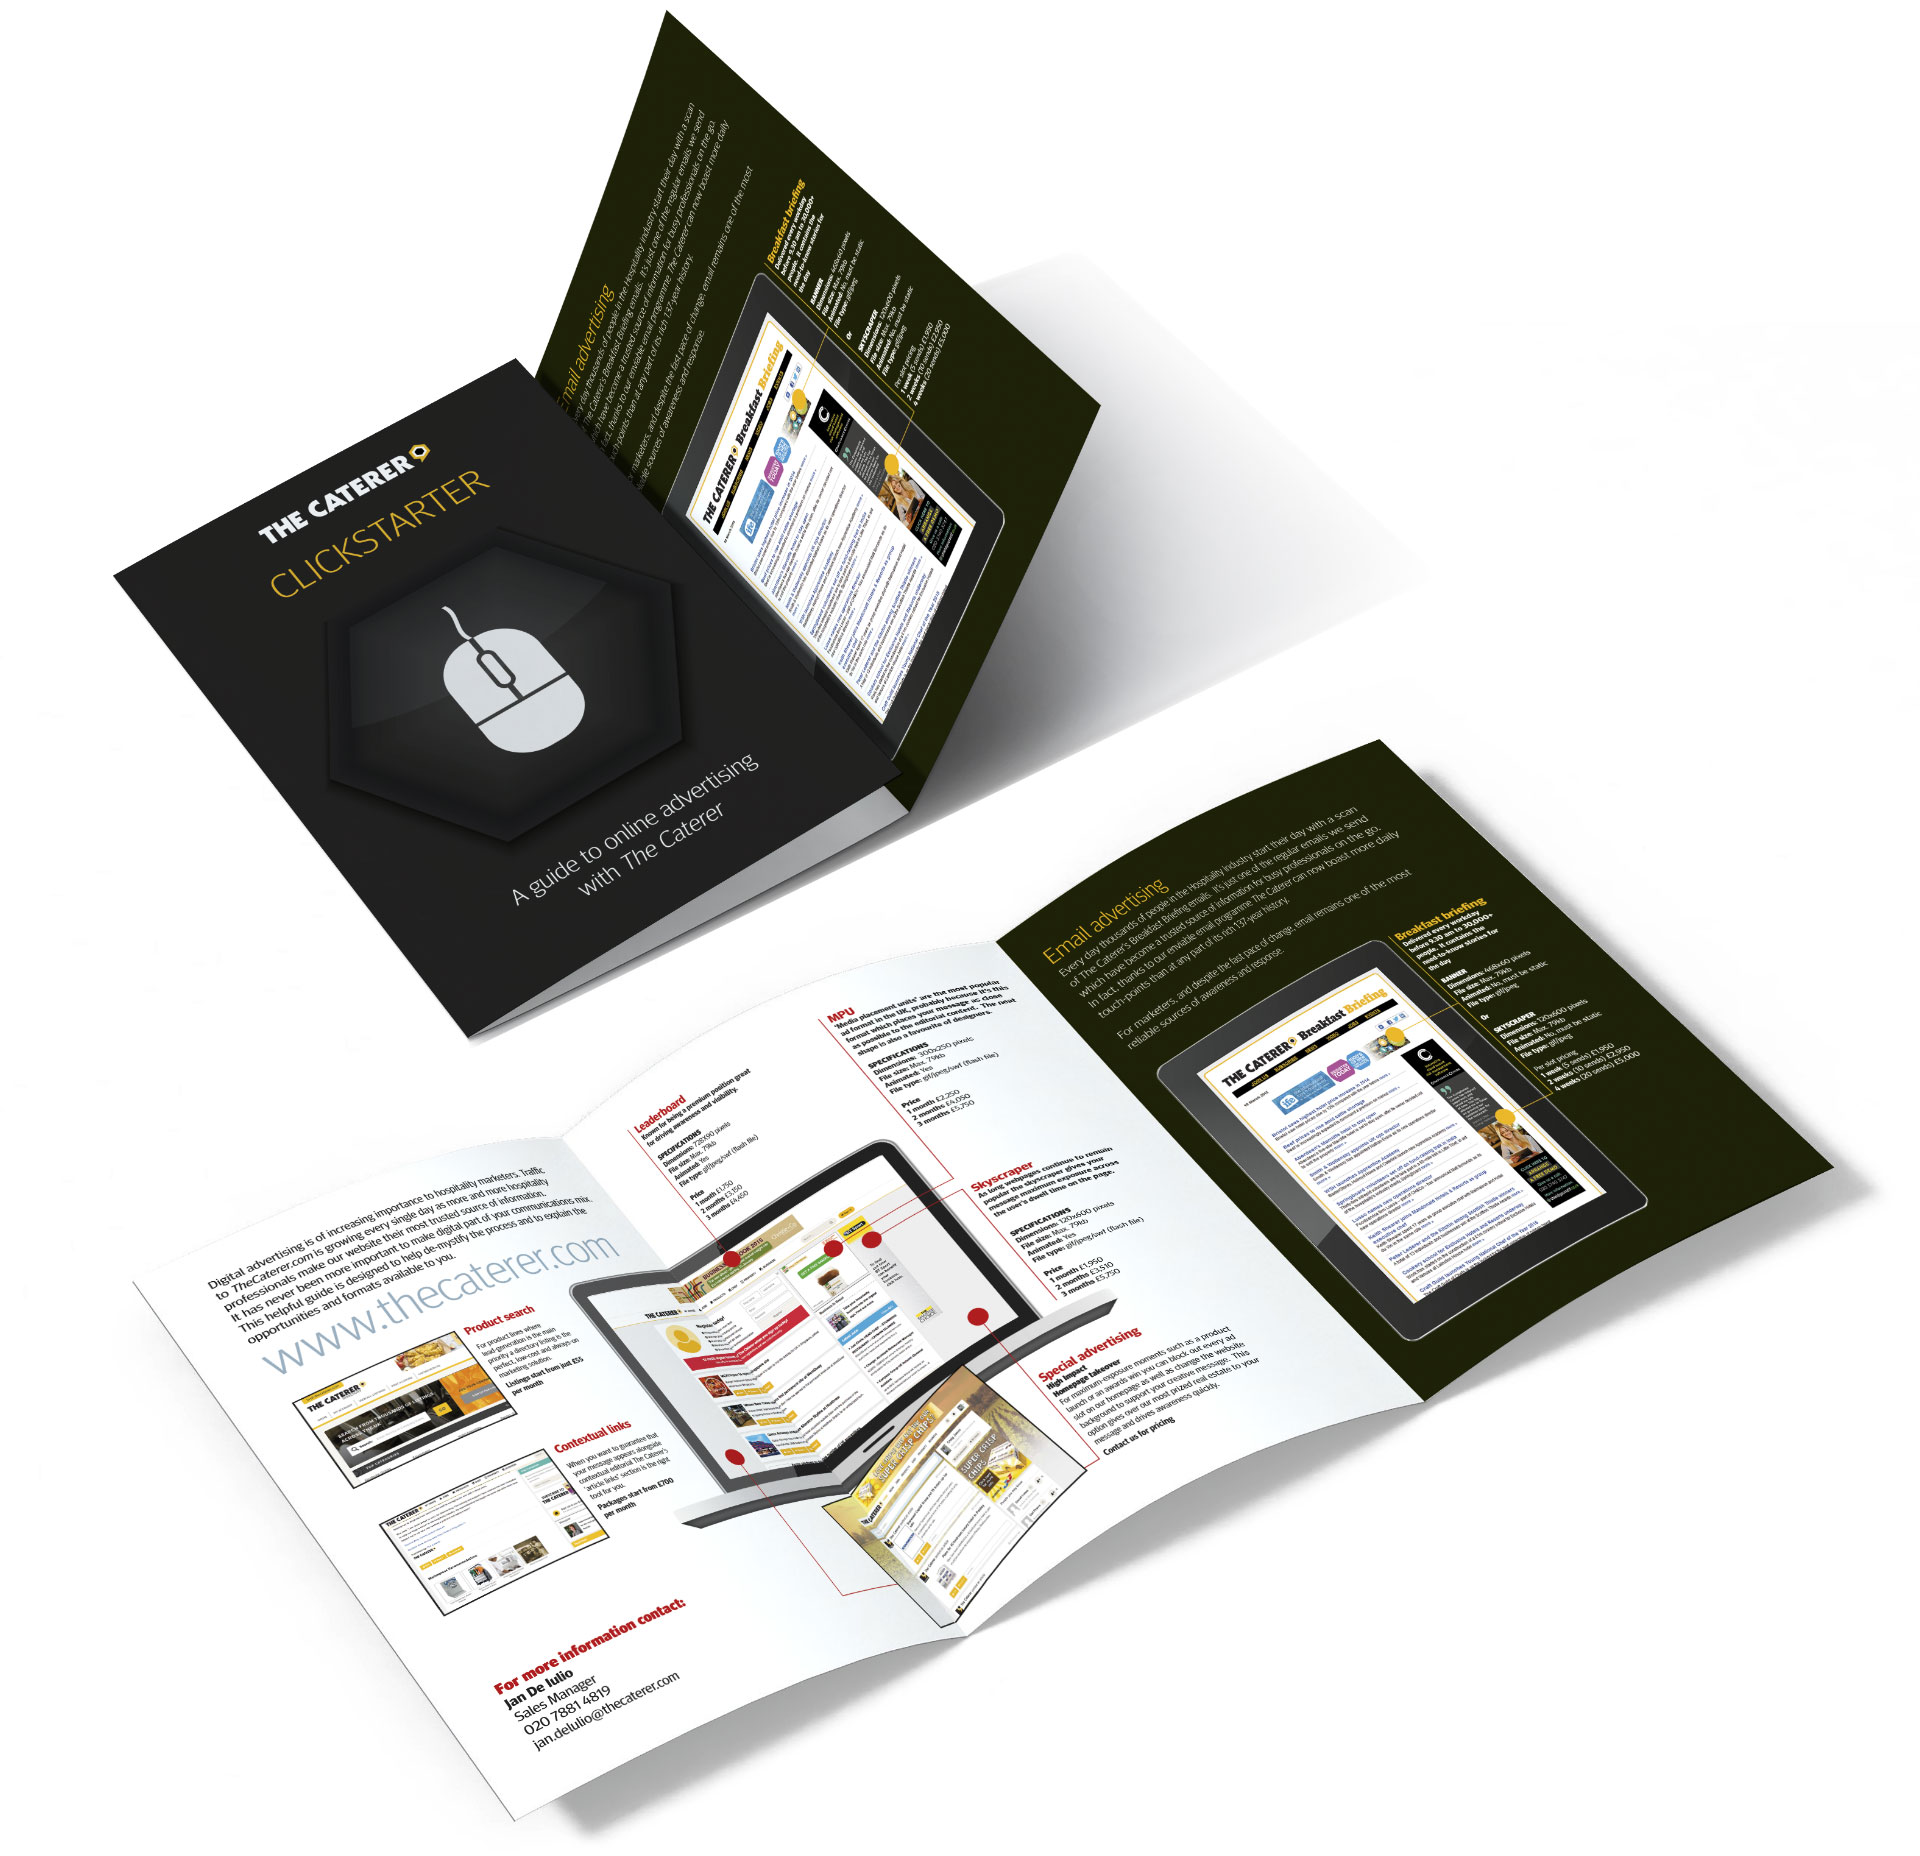 The Caterer Clickstarter Brochure Design By Louise Russell Design